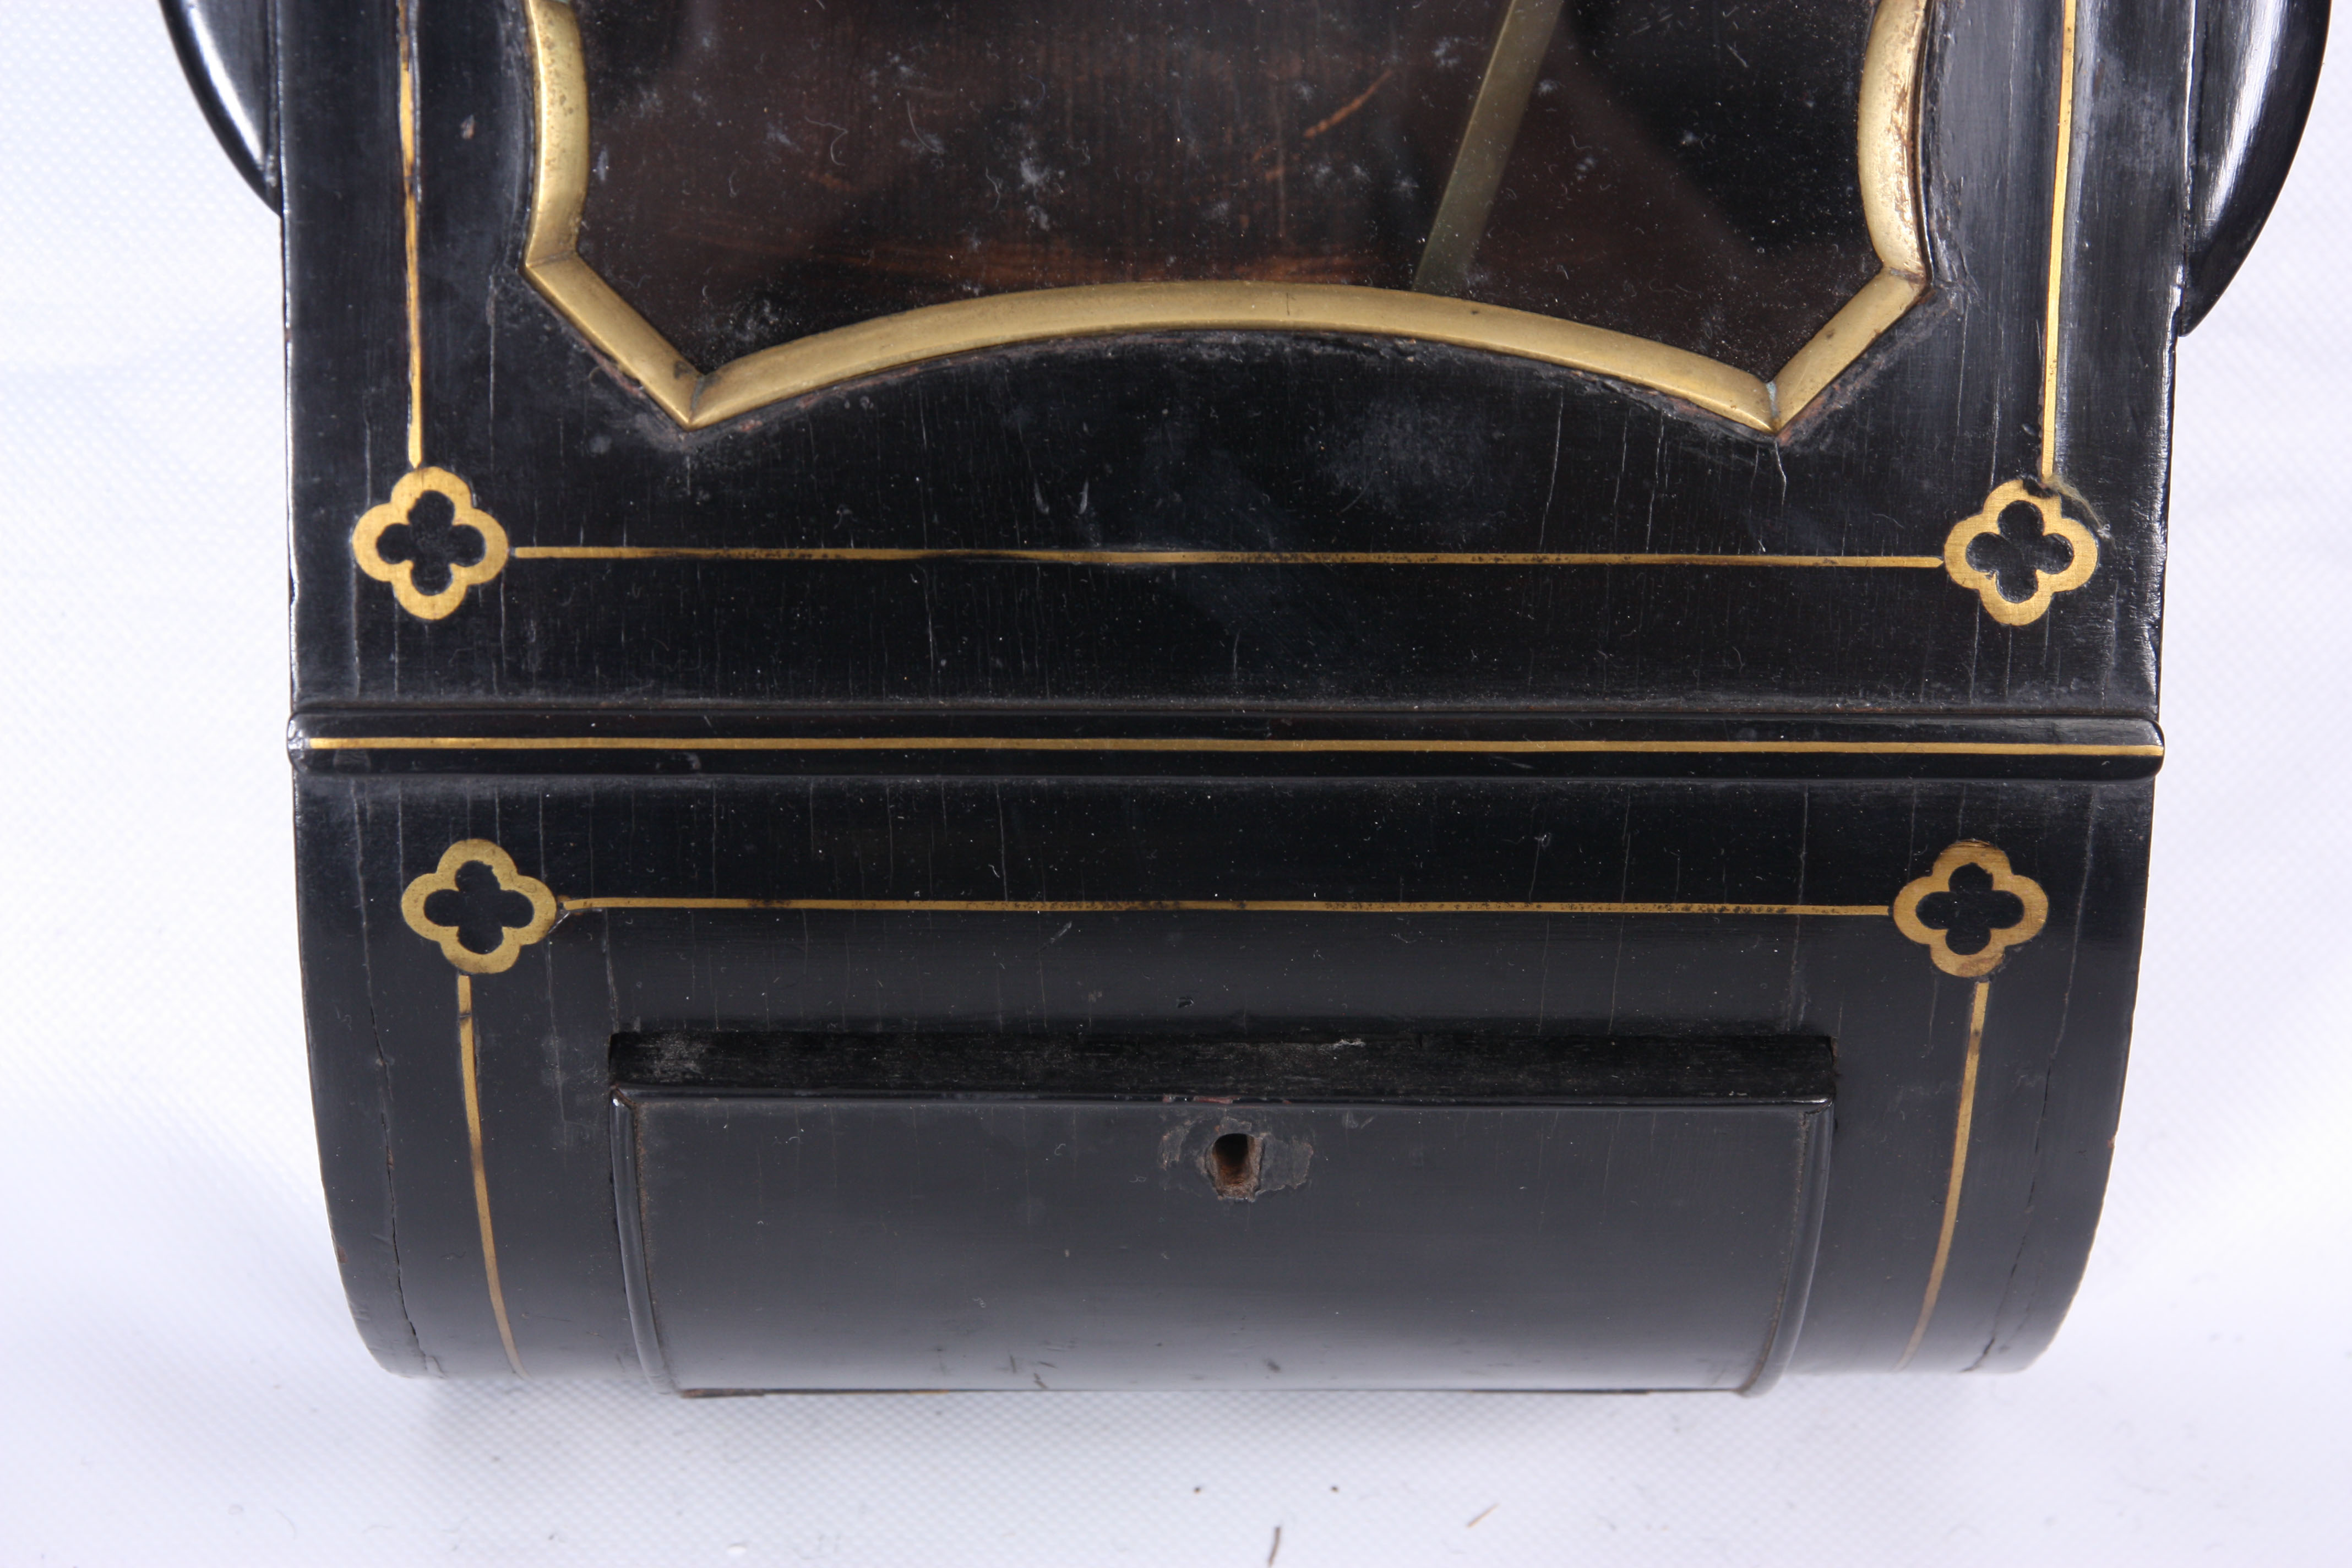 ROSSI, NORWICH A REGENCY EBONISED DOUBLE FUSEE WALL CLOCK with octagonal brass inlaid surround on - Image 5 of 5